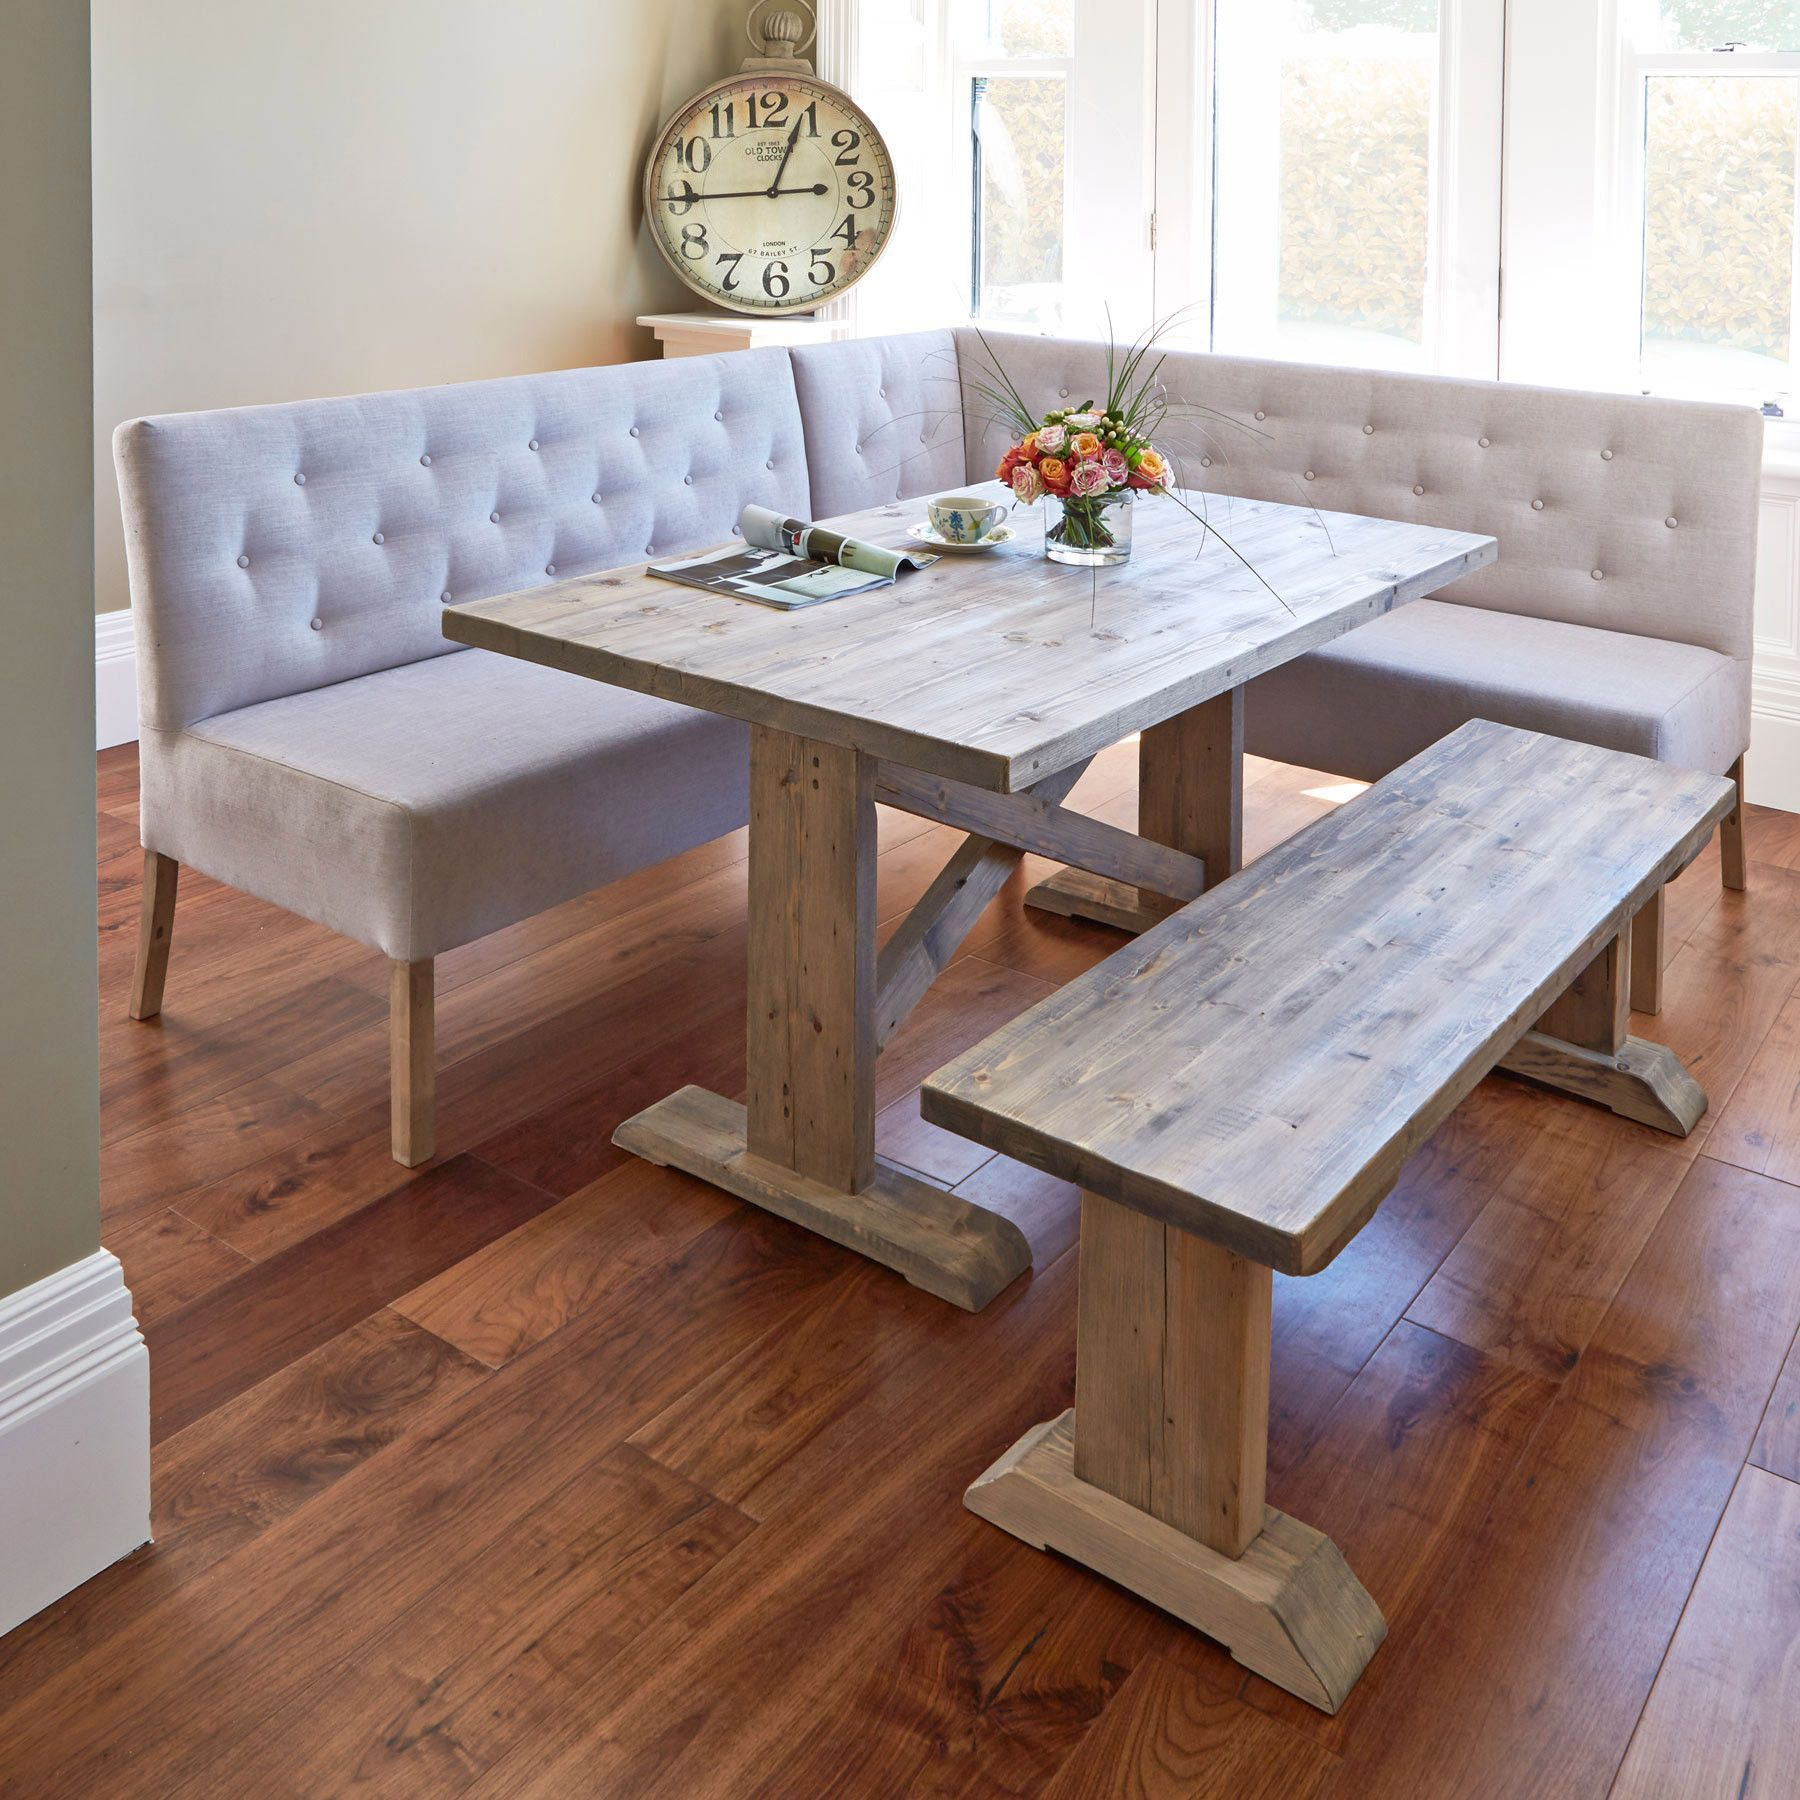 Beyond Chairs: 15 Ways to Transform the Dining Space with ...